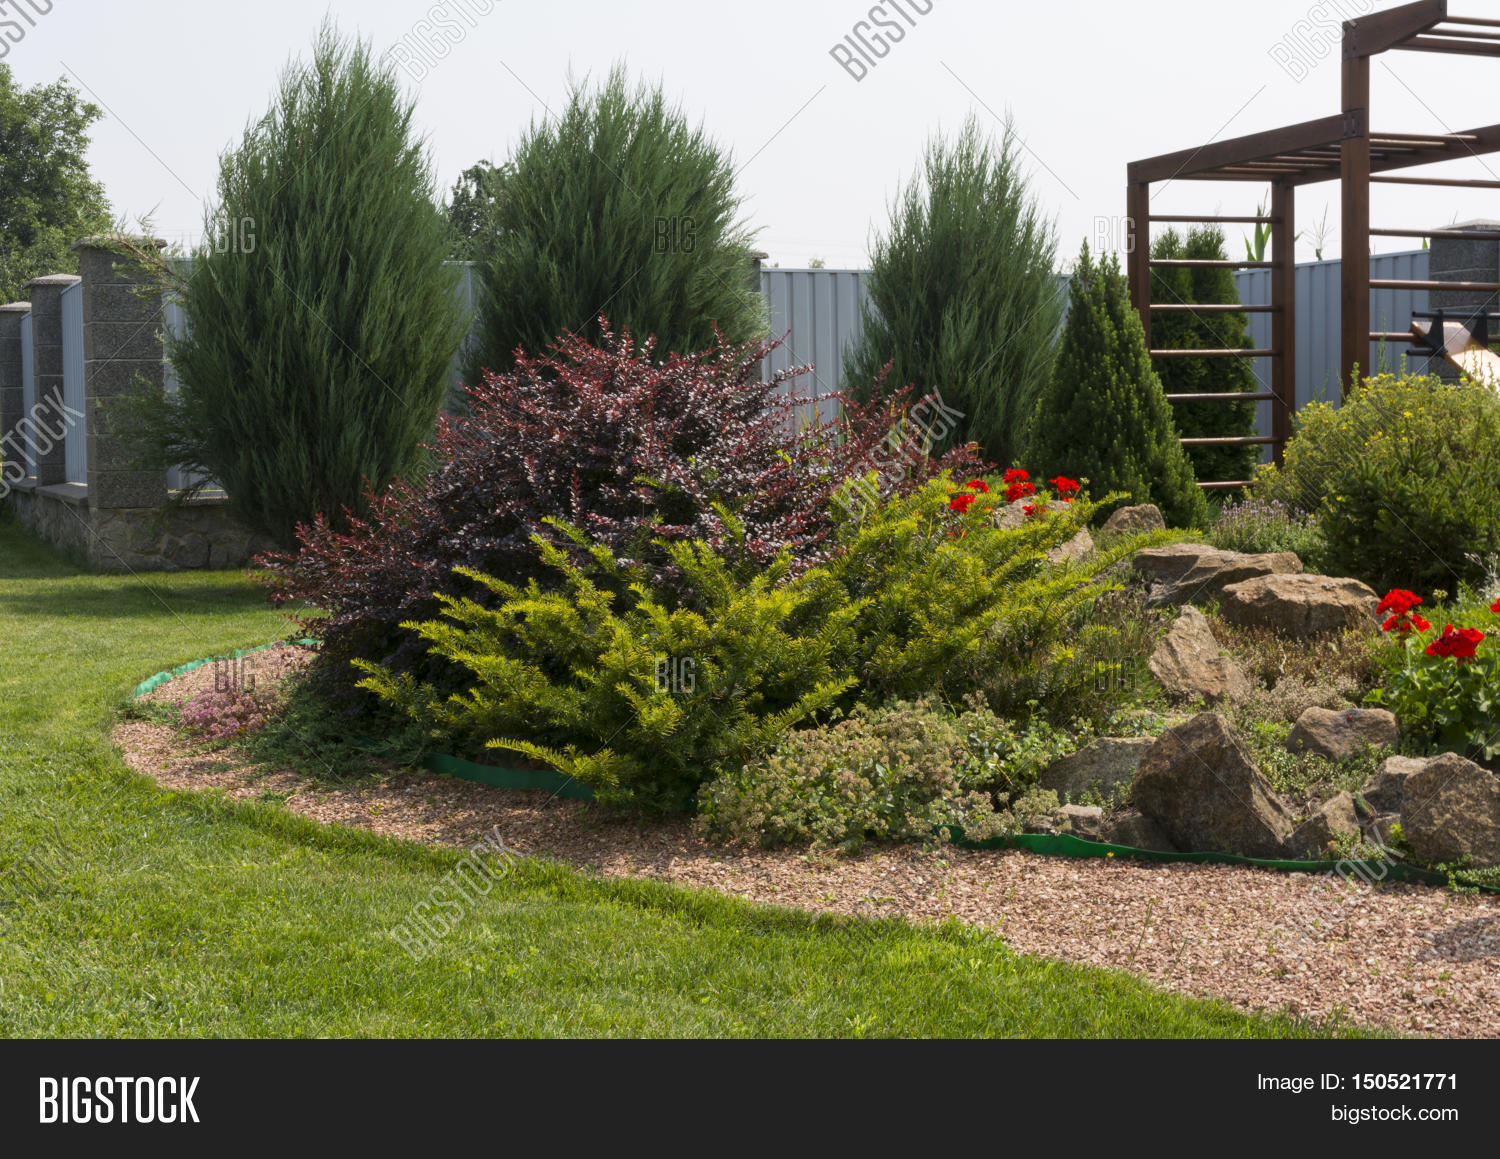 Flower bed stones flowers green image photo bigstock for Green plants for flower beds